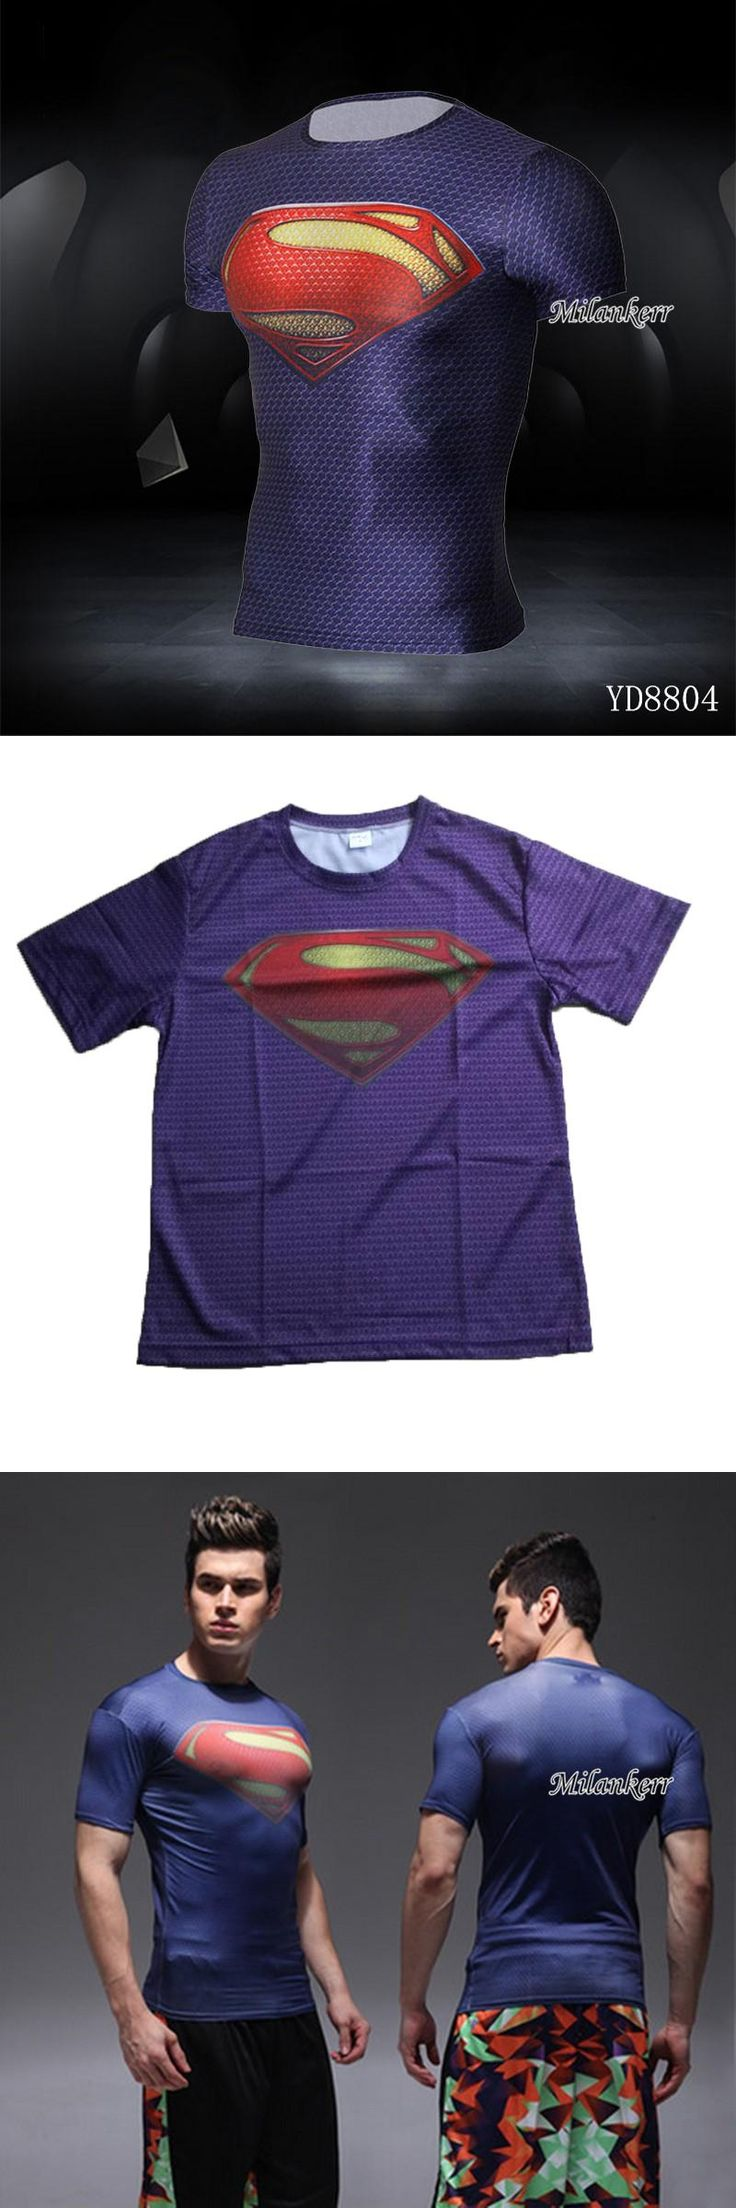 [Visit to Buy] Superman Compressedt Sport Shirt Hiking Runing T-shirt Sports Men Clothing Breathable Quick Dry Fitness Man Biking Clothing #Advertisement